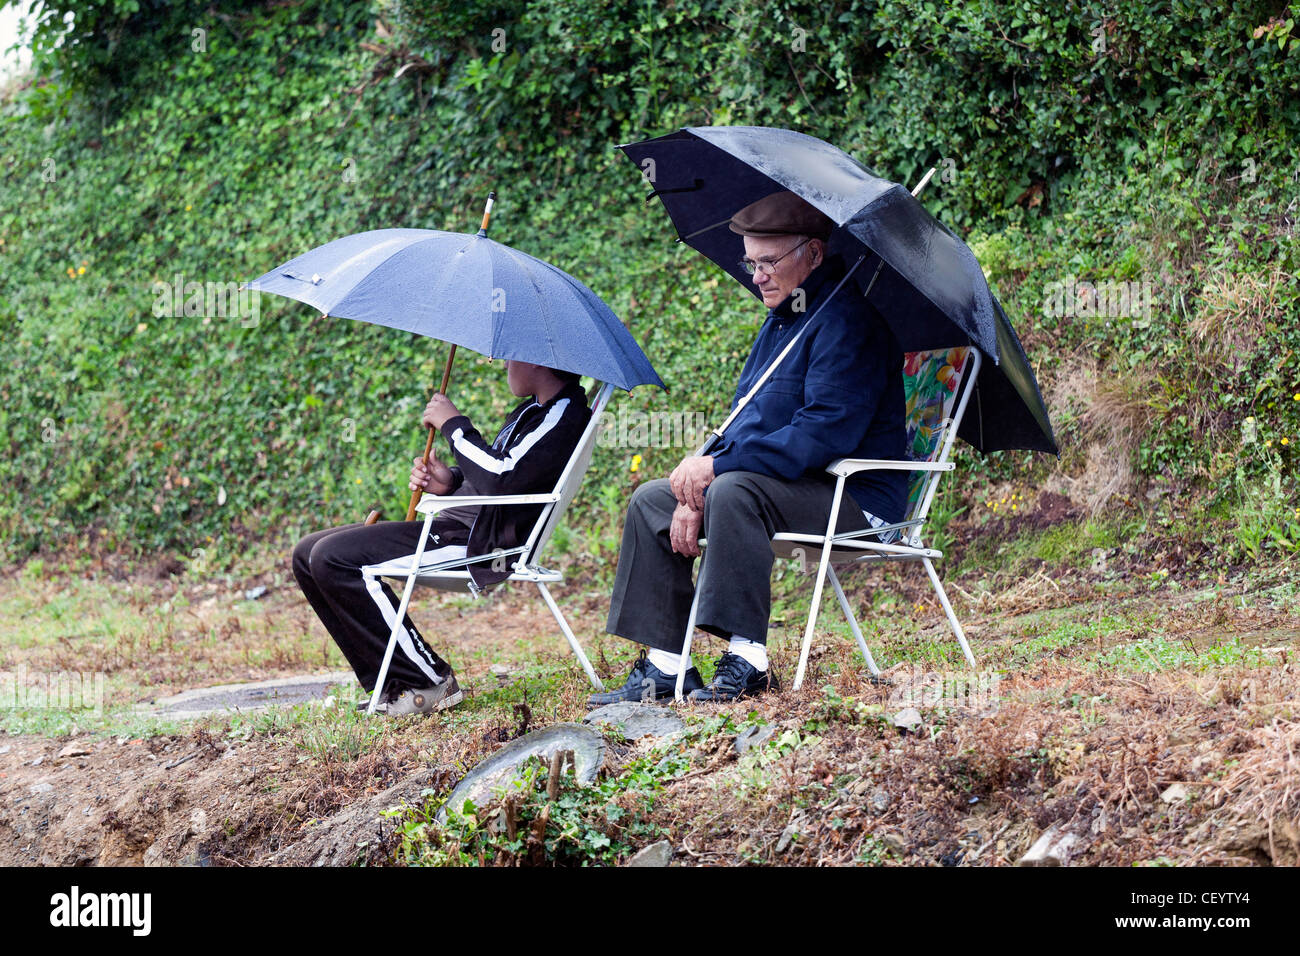 Two persons seated with umbrellas just relaxing under the rain Stock Photo